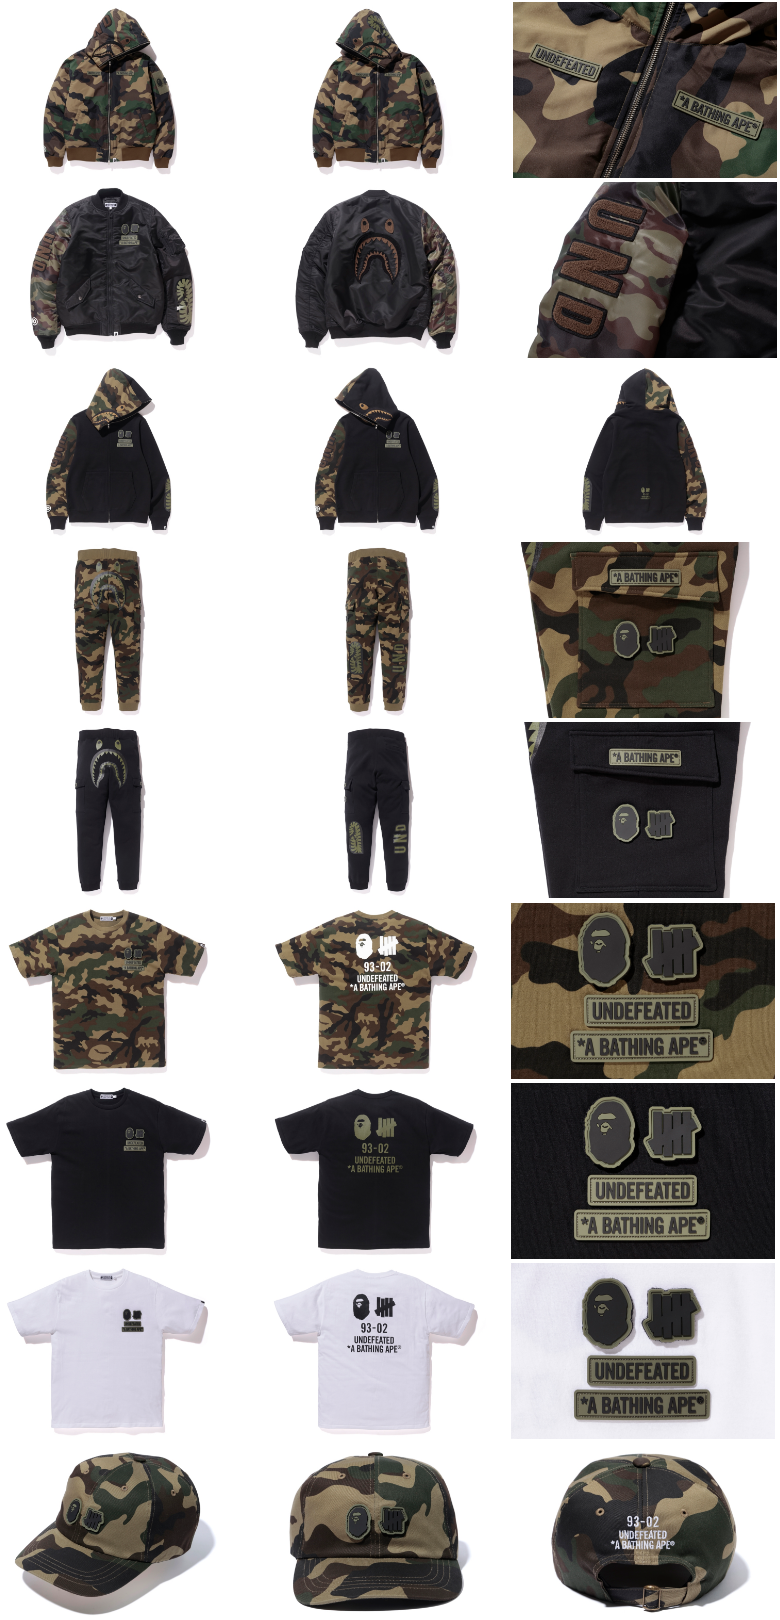 bape-a-bathing-ape-undefeated-2017aw-collaboration-release-20171118